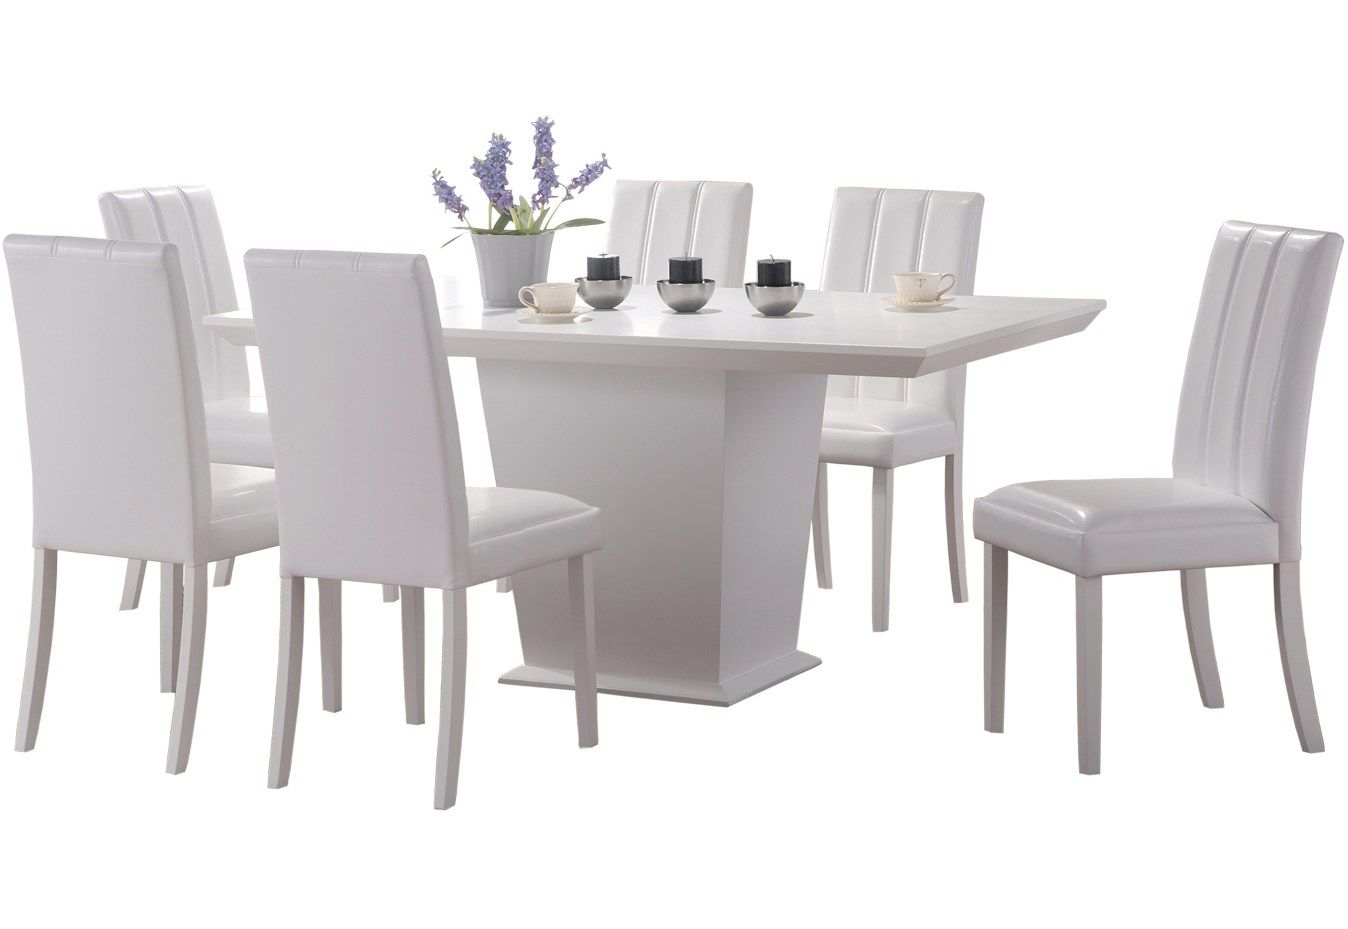 35+ Black and white dining table and chairs Trending